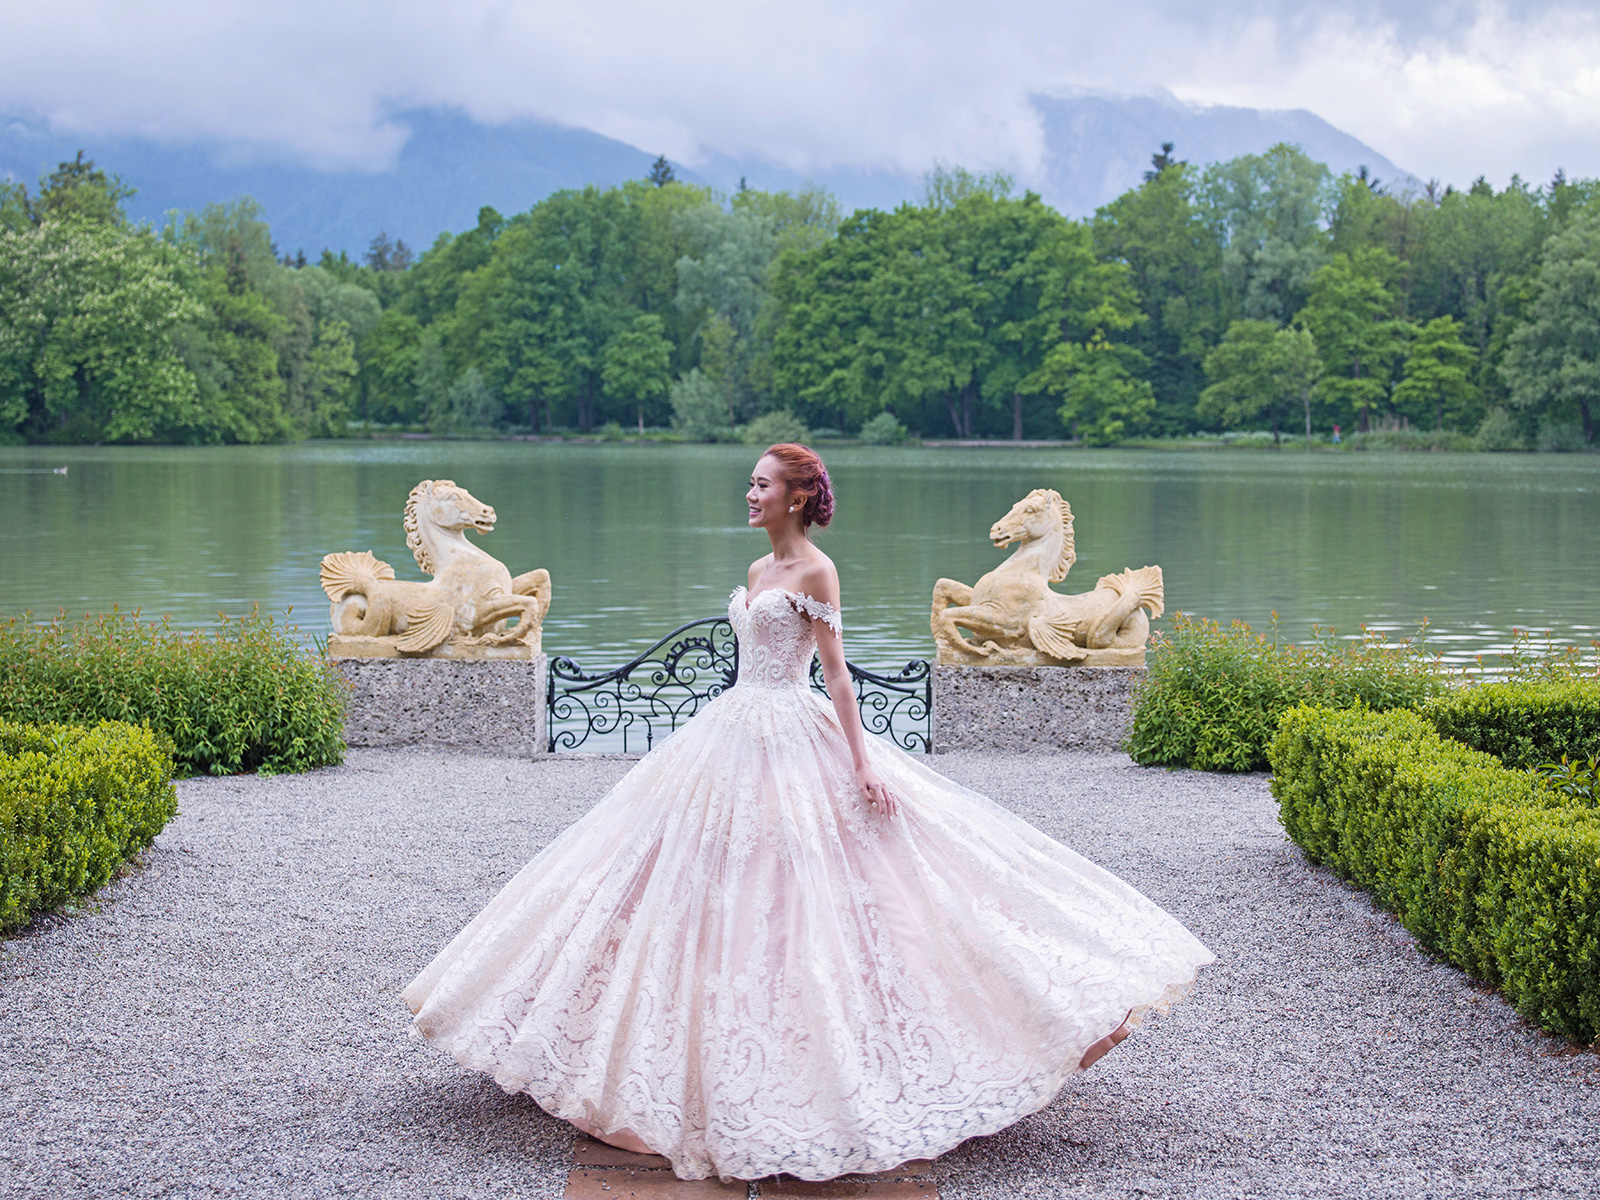 Camille Co lace bridal ball gown in Slazburg, Europe - www.itscamilleco.com